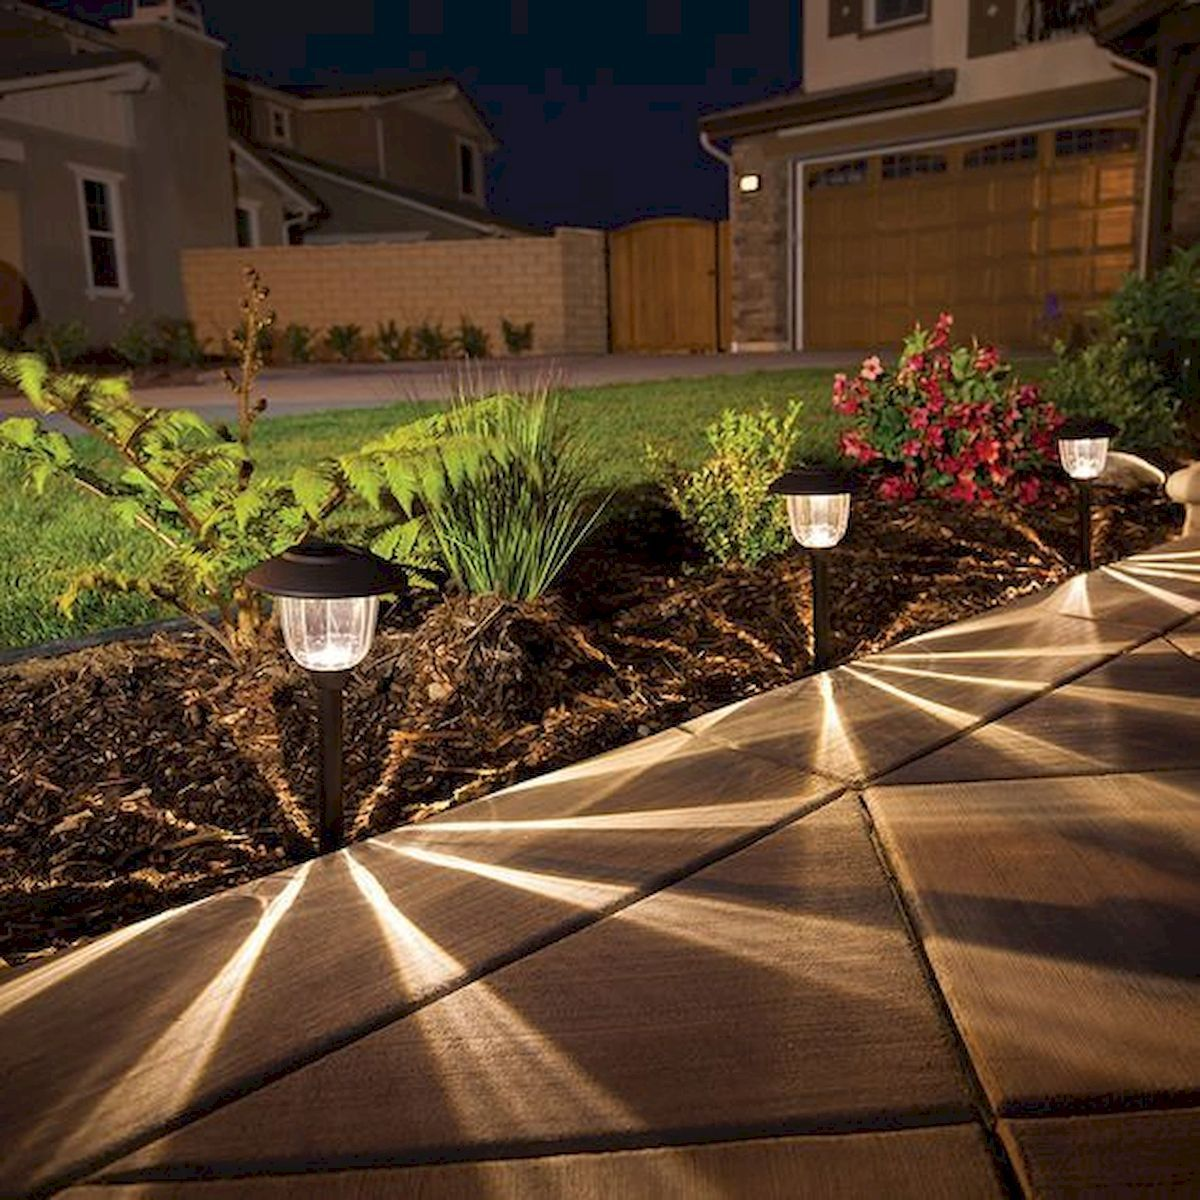 Nice 55 Stunning Garden Lighting Design Ideas And Remodel Https Coachdecor Com 55 Stunn Garden Lighting Design Landscape Lighting Design Garden Lighting Tips